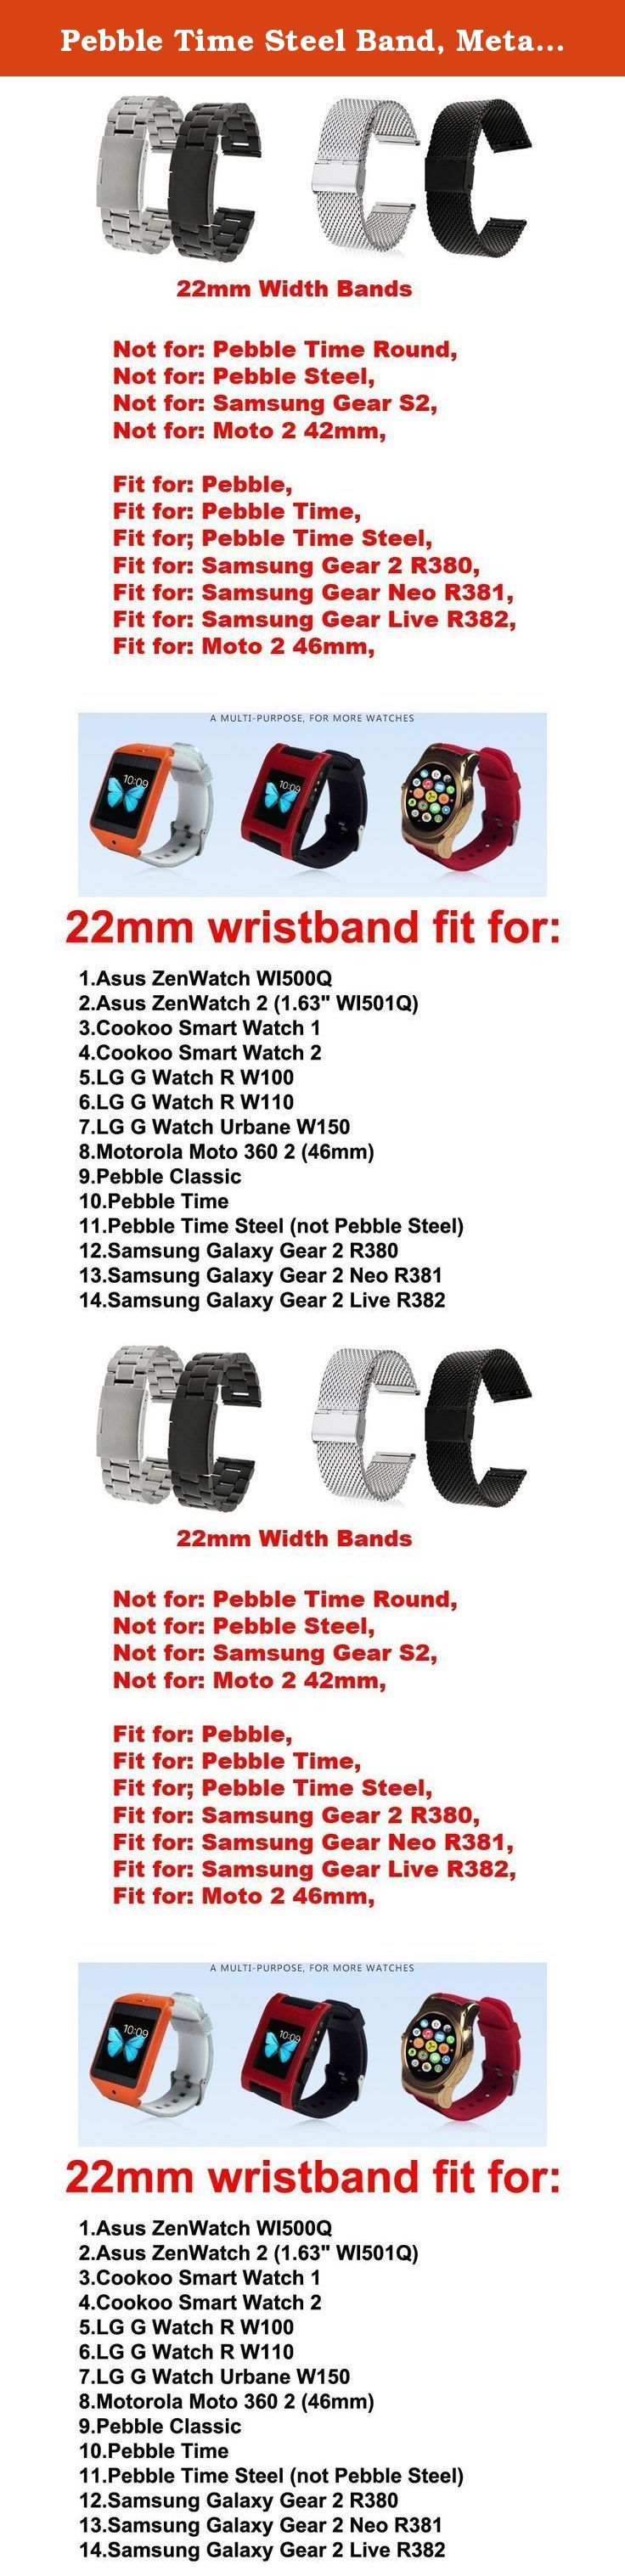 Pebble Time Steel Band, Metal, Replacement Stainless Steel Watch Strap for Pebble Time Steel (NOT Pebble Steel) Smart Watch /No Watch - 3zhuSilver. Metal Watchband/ Stainless Steel Strap fits for (Pebble Time Steel) Smart Watch, Please NOTE: Not Pebble Steel With Prefect workmanship, fashion design, comfortable feeling, stylish look, giving you noble wearing experience, easy to use, come with a set of tools Easy to install and remove; Width: 22mm; Length adjustable length; Best metal…